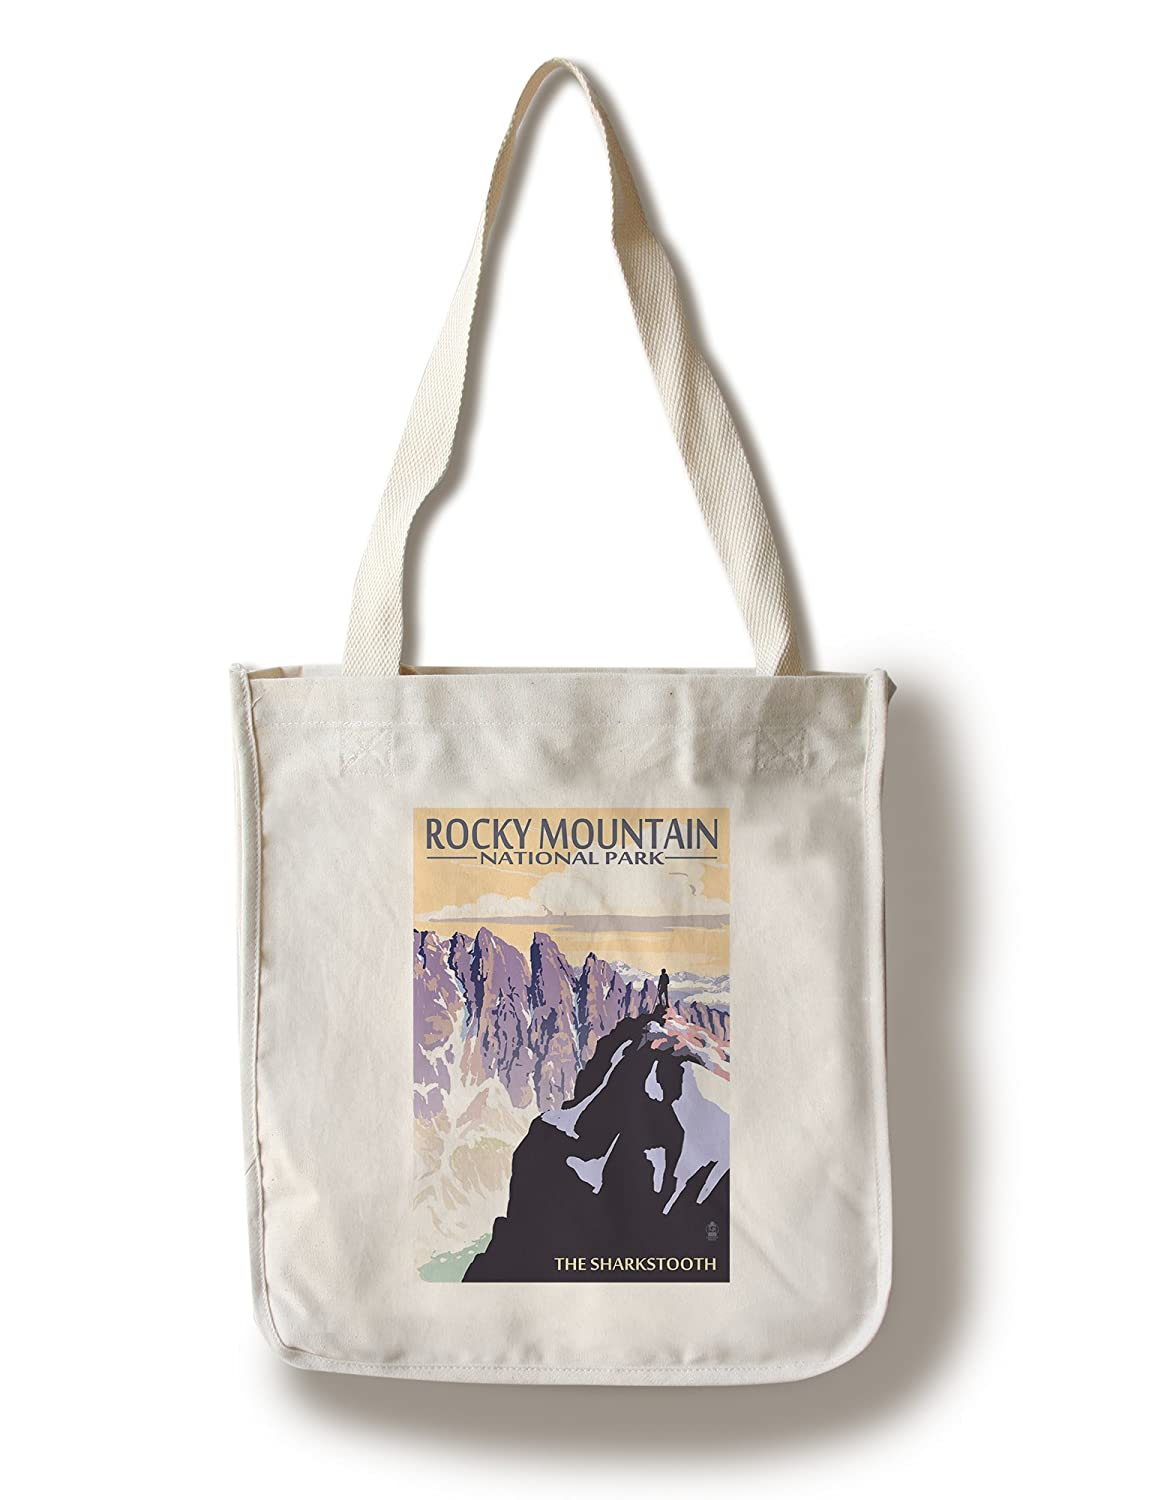 The Sharkstooth – ロッキーマウンテン国立公園 Canvas Tote Bag LANT-36920-TT B01841CH48  Canvas Tote Bag